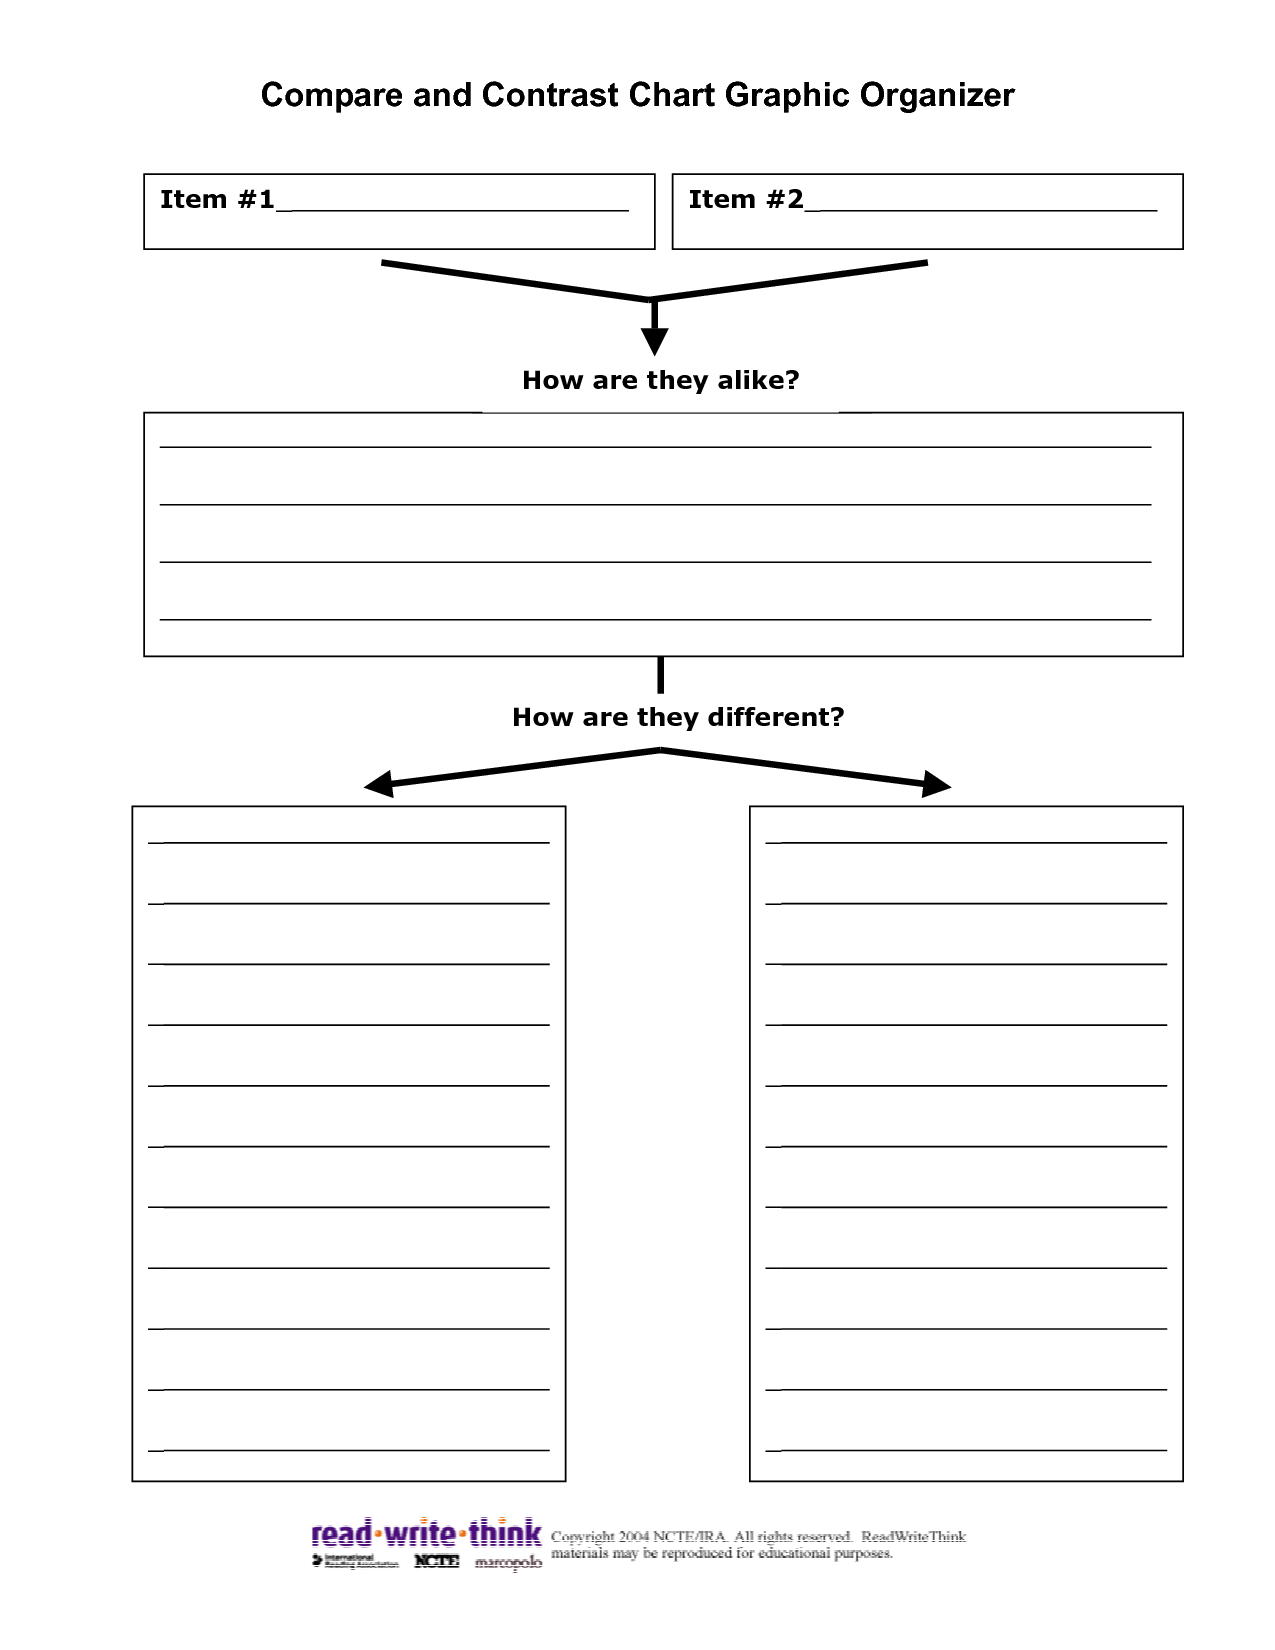 graphic organizer for a comparecontrast essay. Resume Example. Resume CV Cover Letter